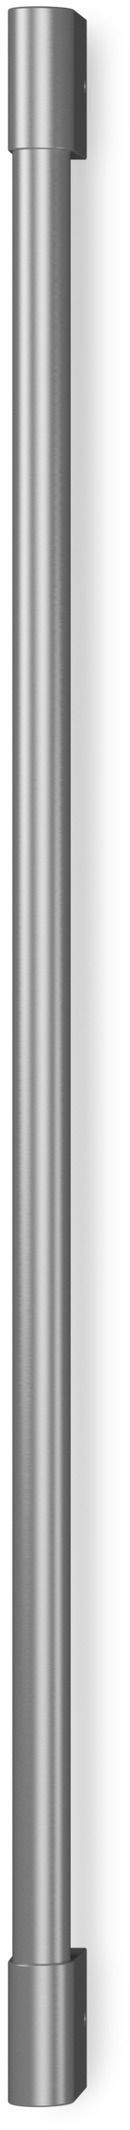 Monogram® Statement Stainless Steel Handle Kit-ZXGW1H1PPSS